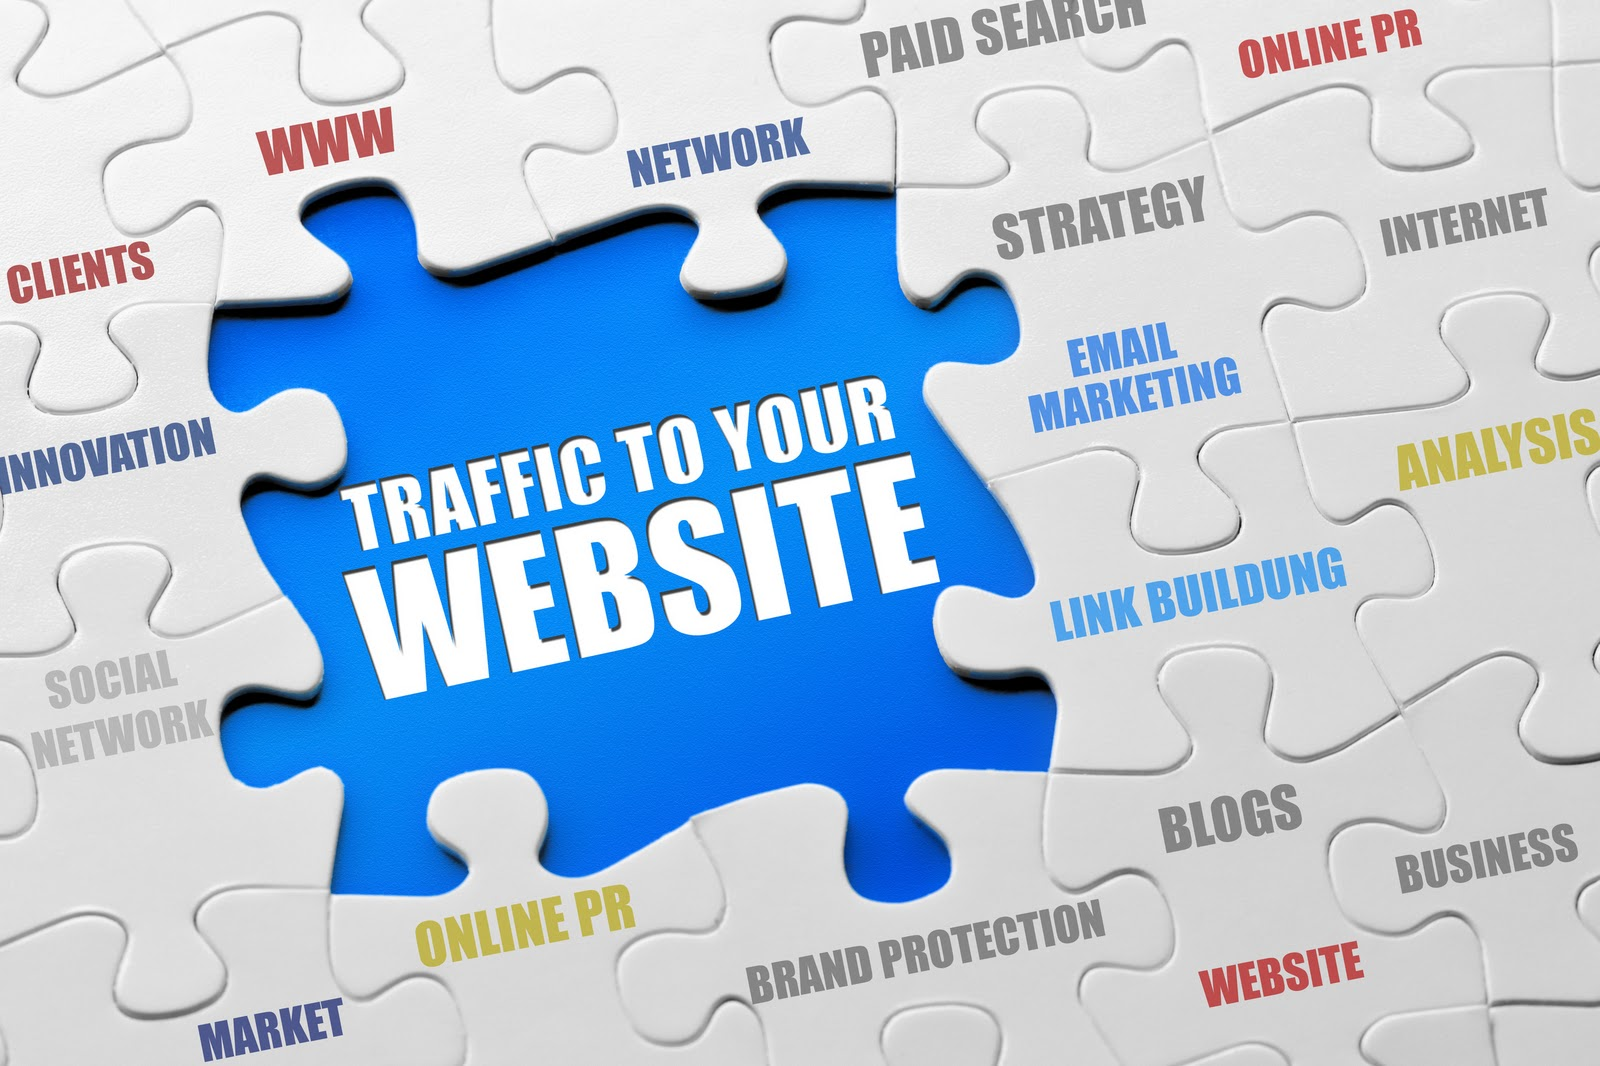 Advantages of Hiring a Professional Web Design Agency For Your Business